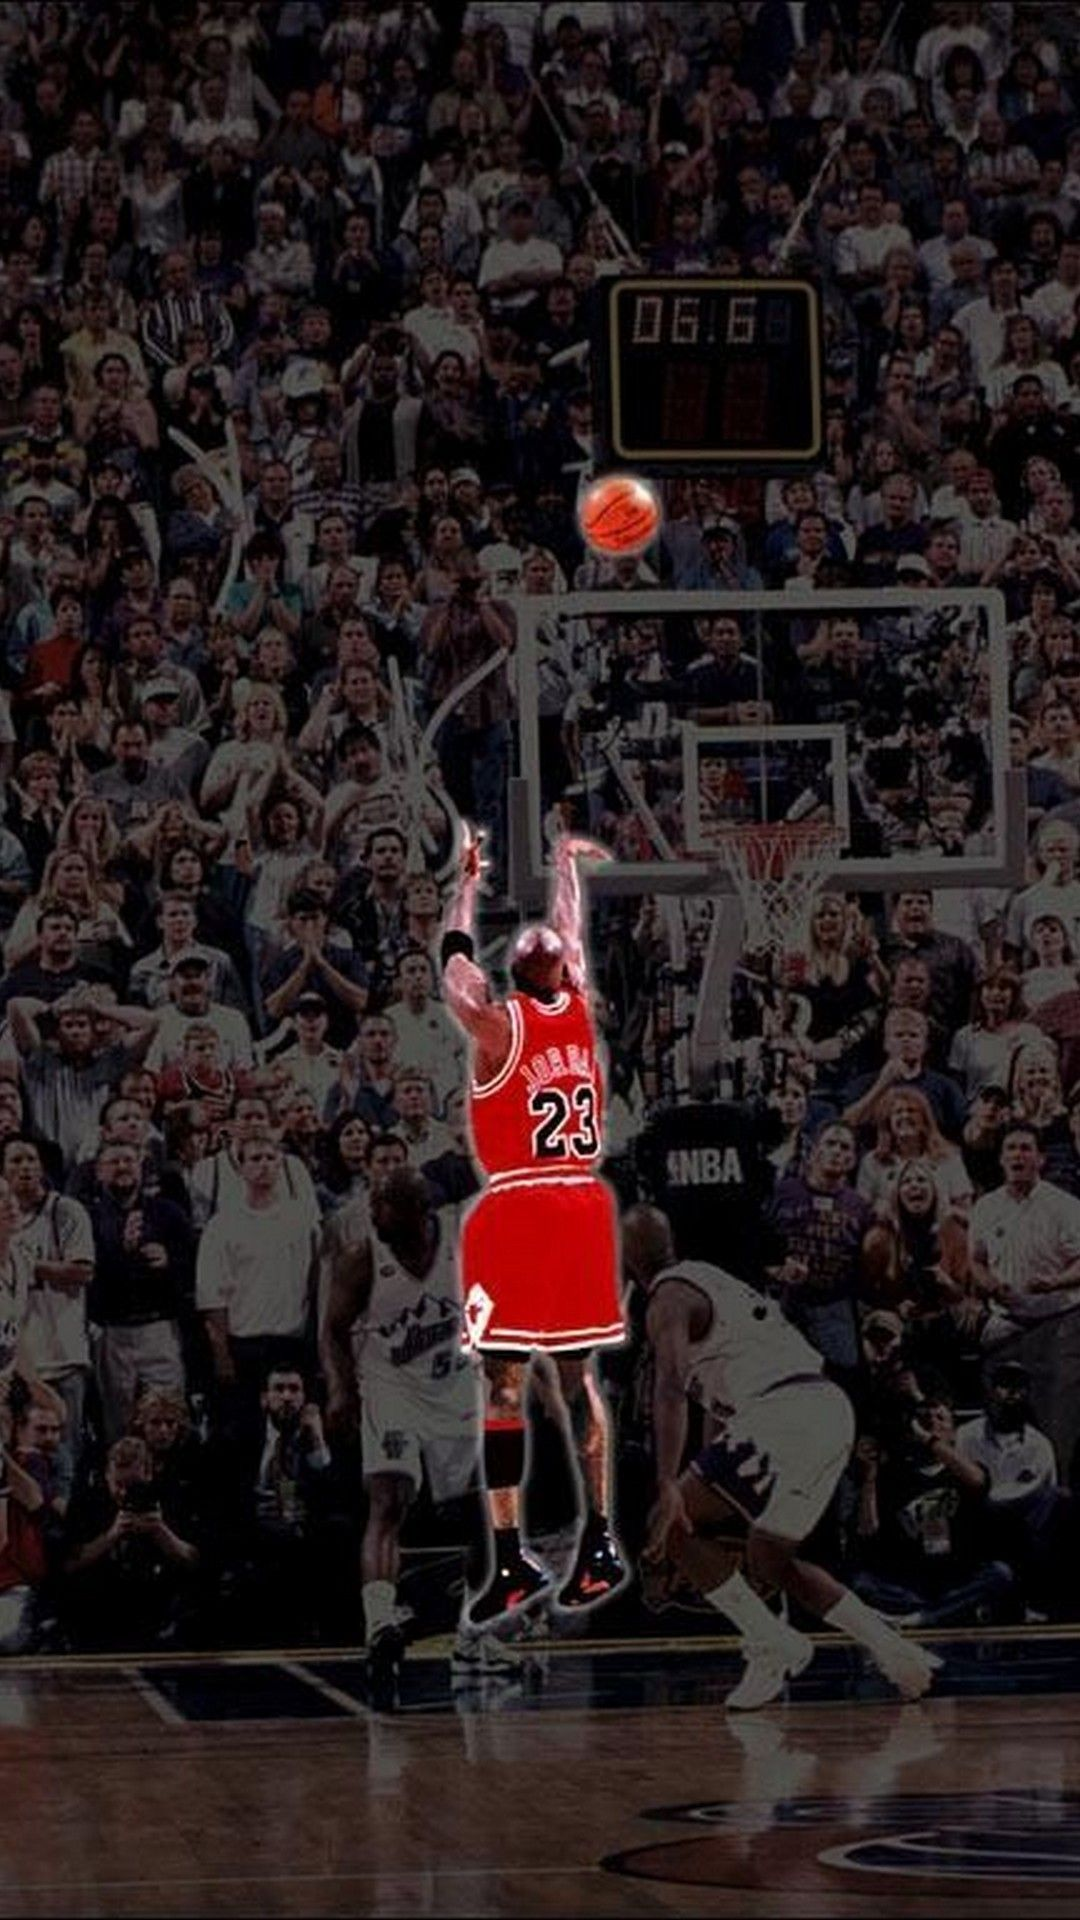 Jordan Michael Jordan In 2020 Michael Jordan Pictures Michael Jordan Photos Michael Jordan Wallpaper Iphone